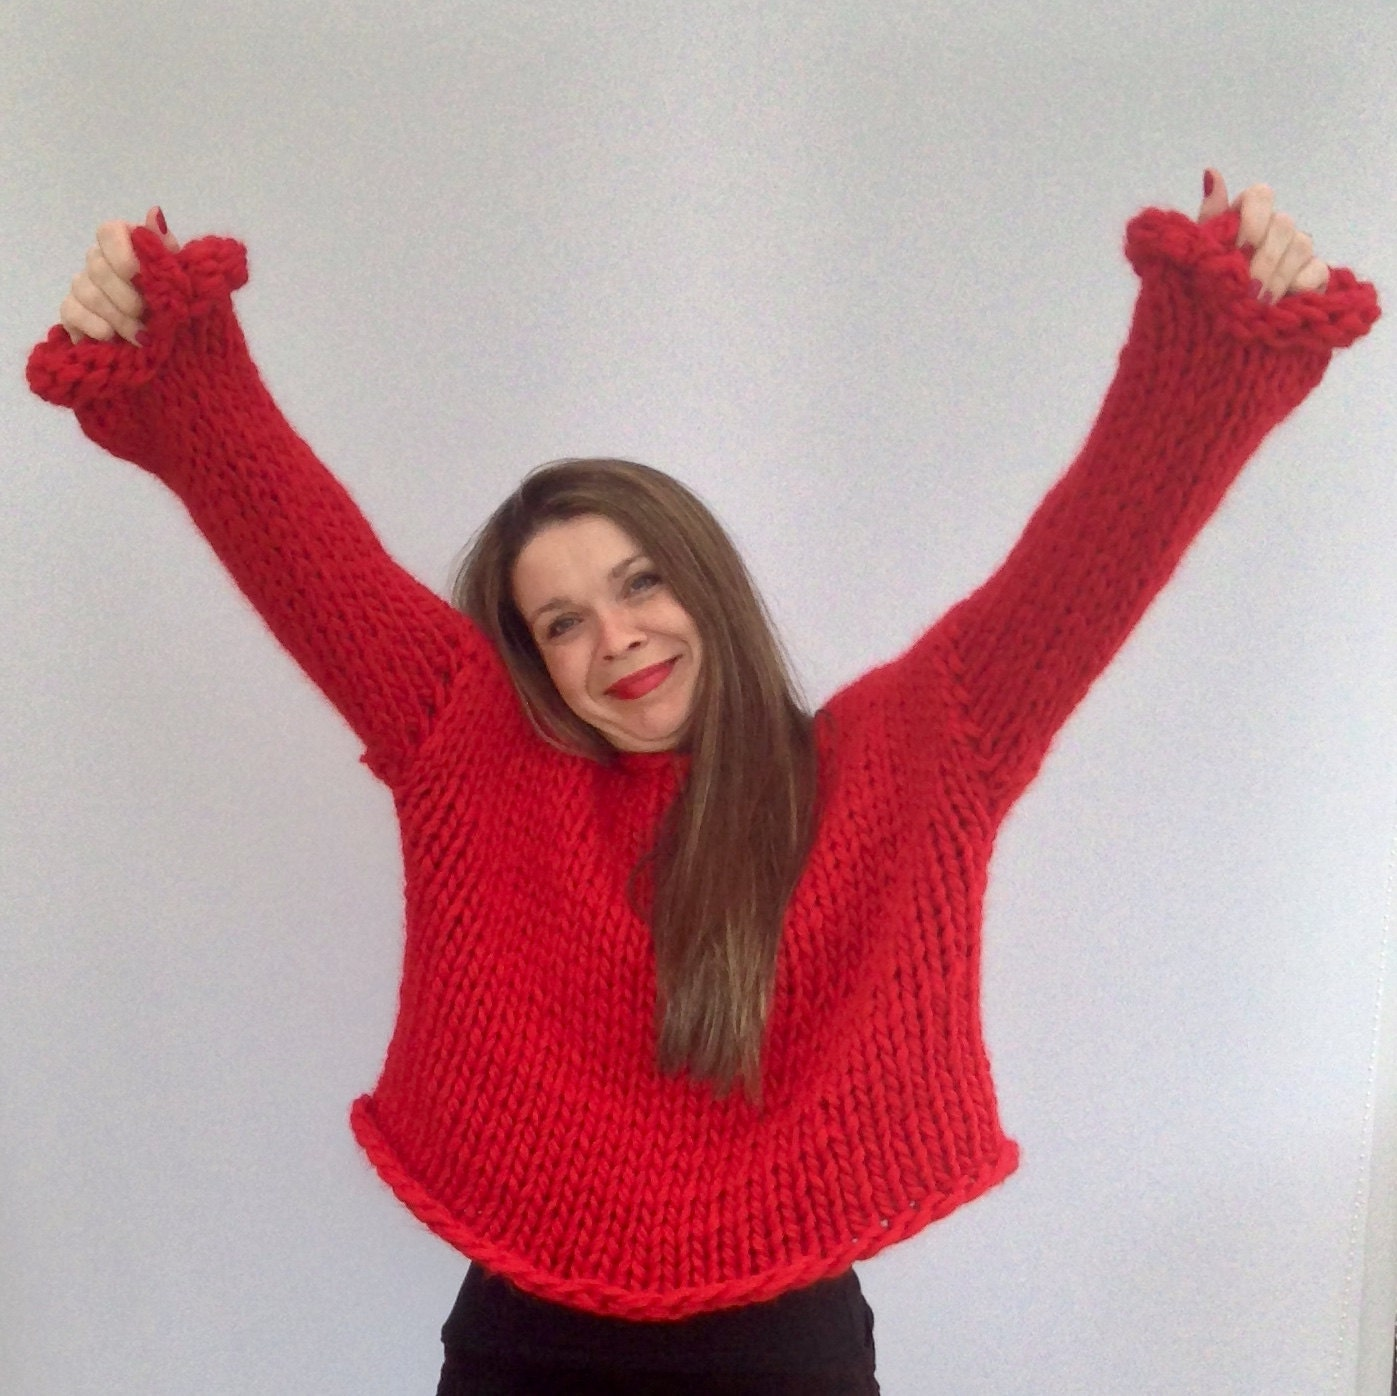 Oversized Jumper Knitting Pattern : Sweater KNITTING KIT. Oversized Jumper / by WoolCoutureCompany